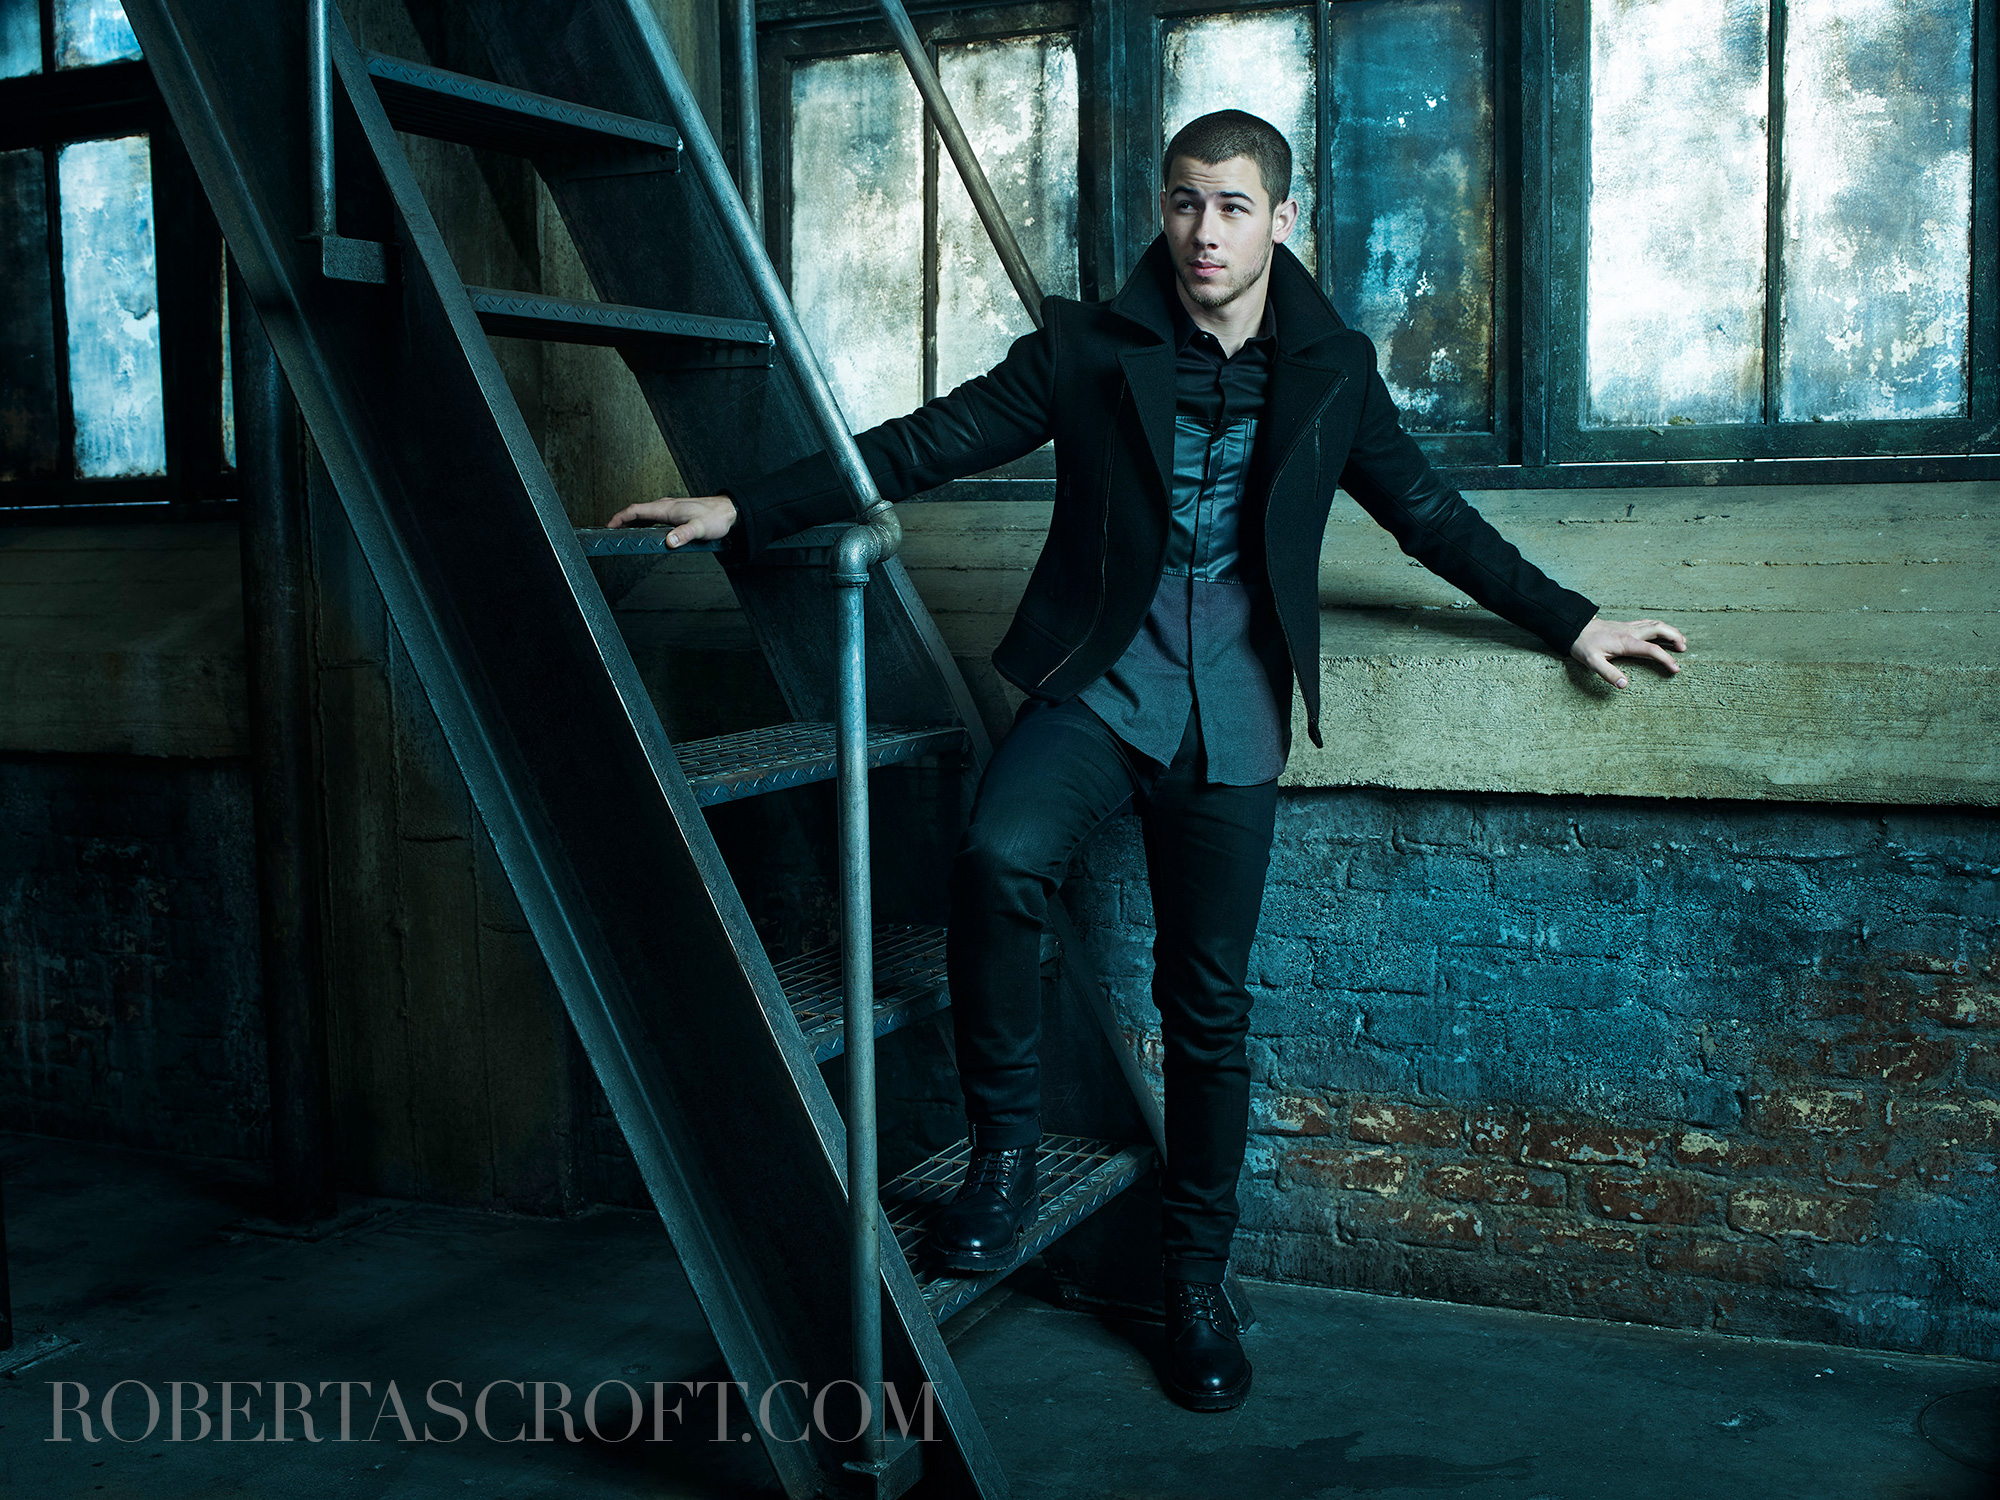 Nick-Jonas-by-Robert-Ascroft-01